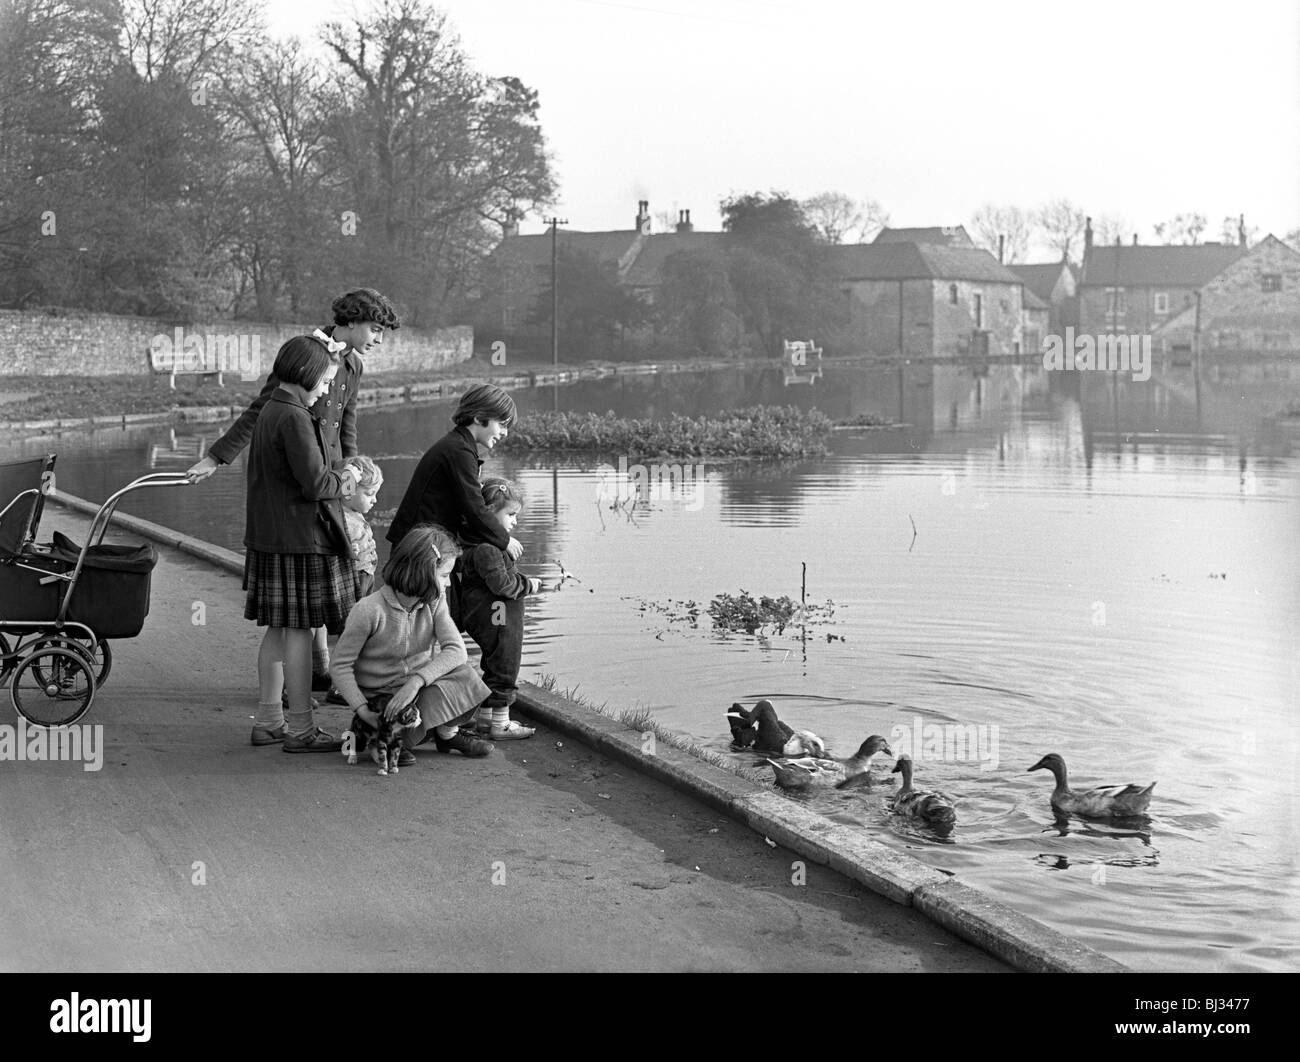 Village Duck Pond scena, Tickhill, Doncaster, South Yorkshire, 1961. Artista: Michael Walters Immagini Stock